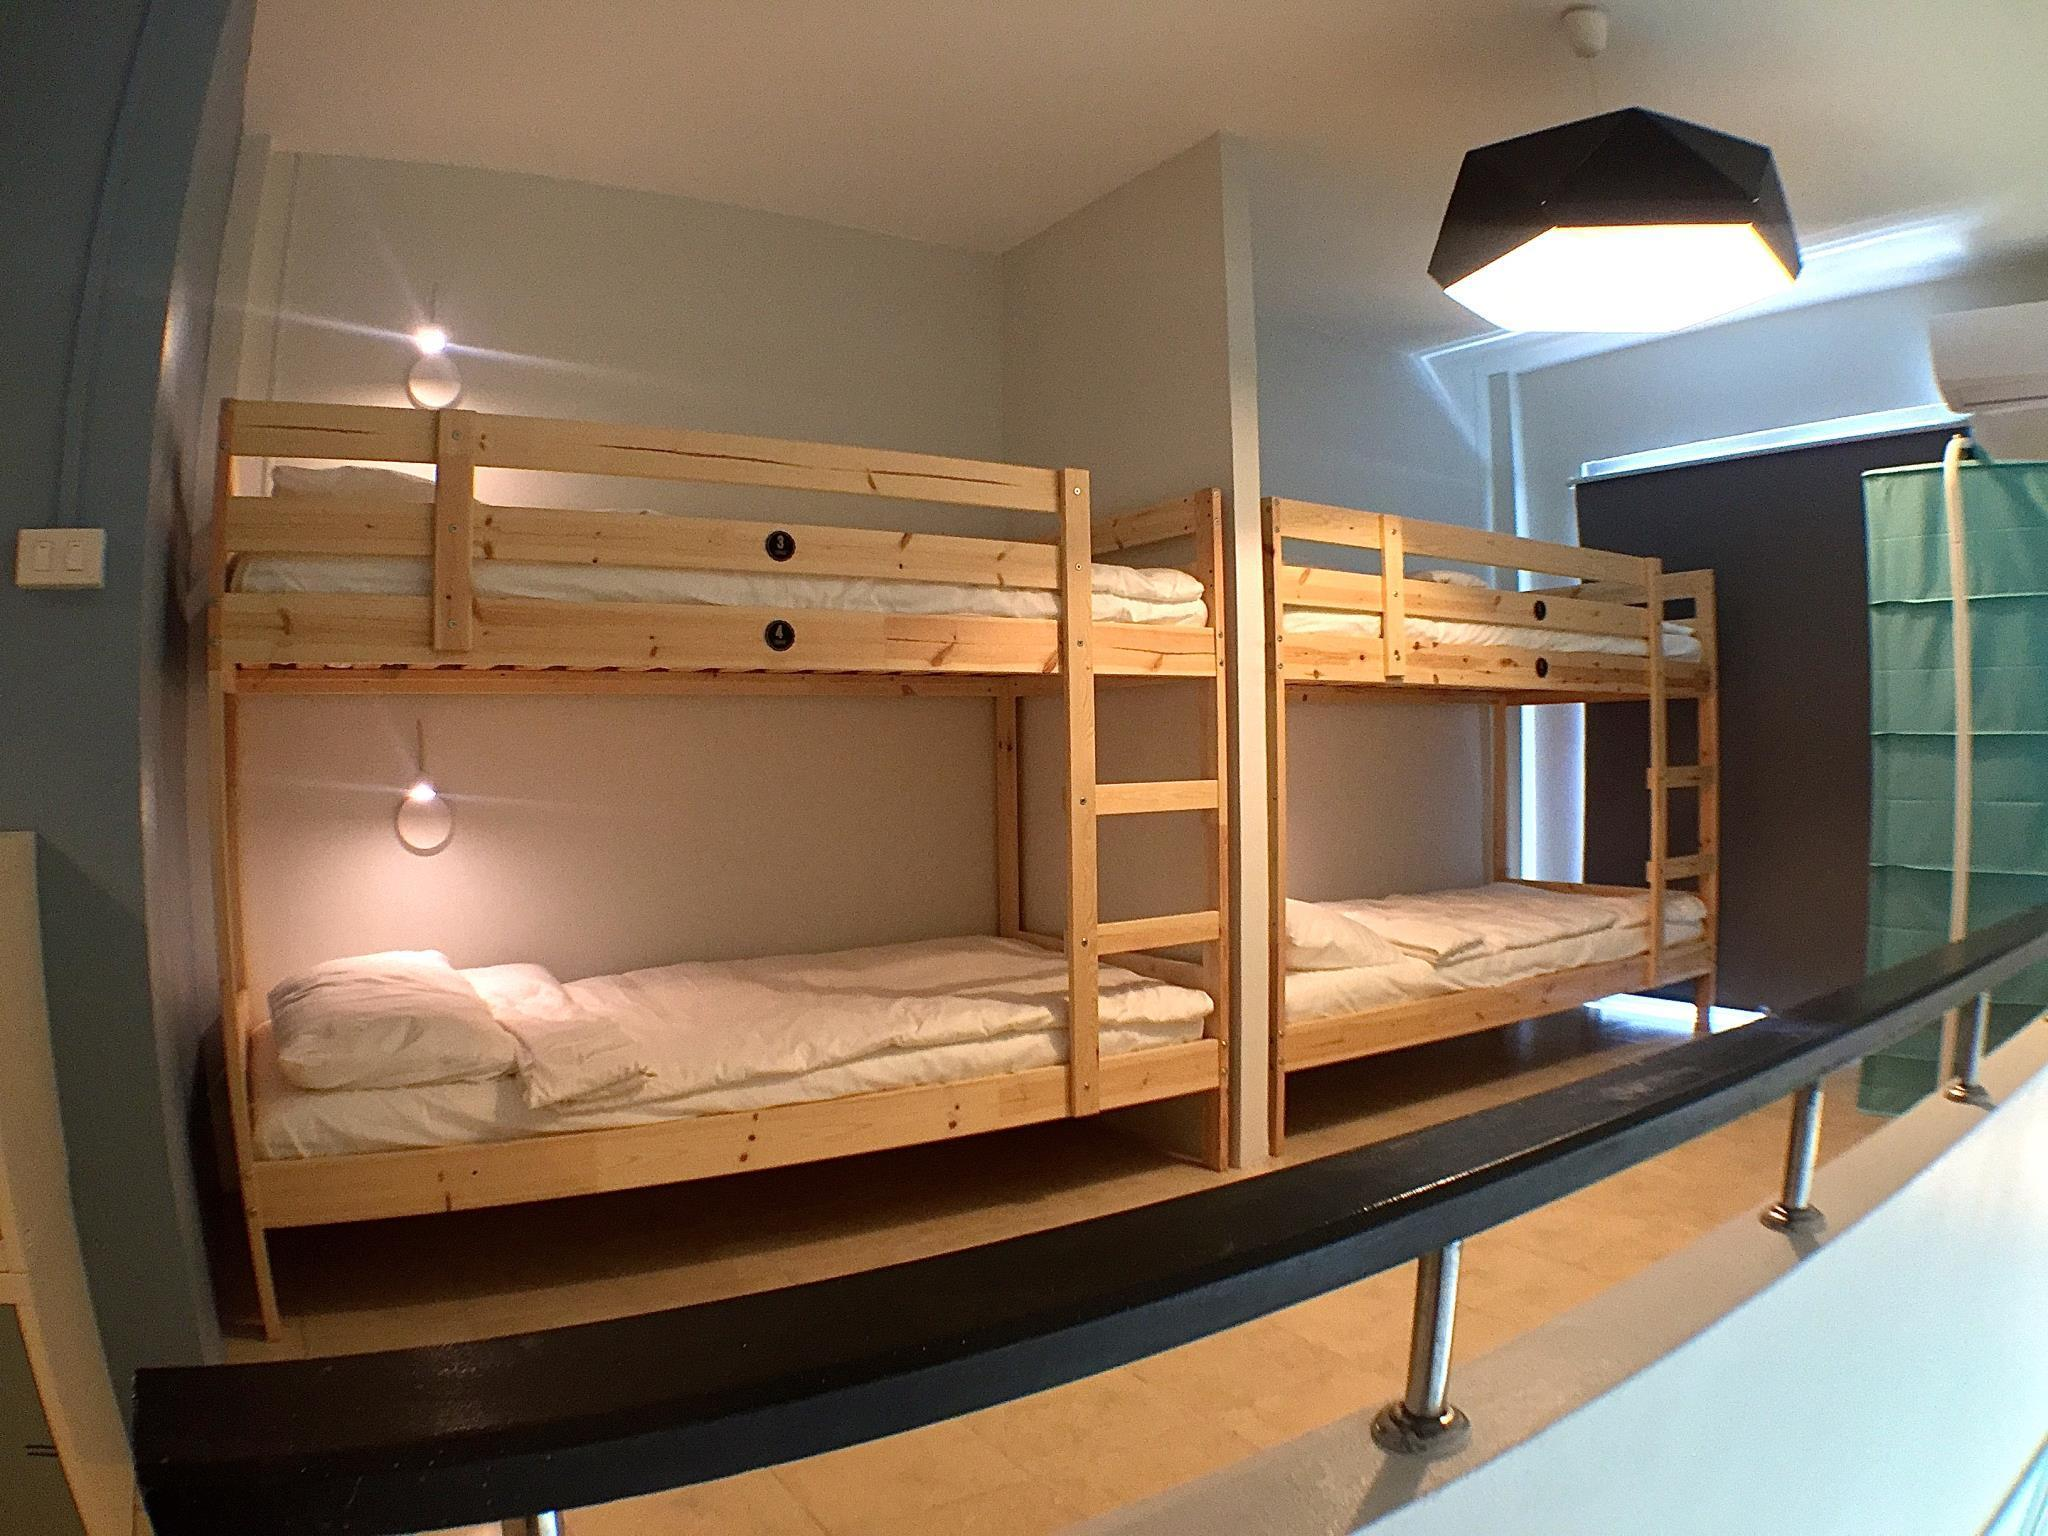 Lit dans un dortoir mixte de 6 lits (1 Person in 6-Bed Dormitory - Mixed)